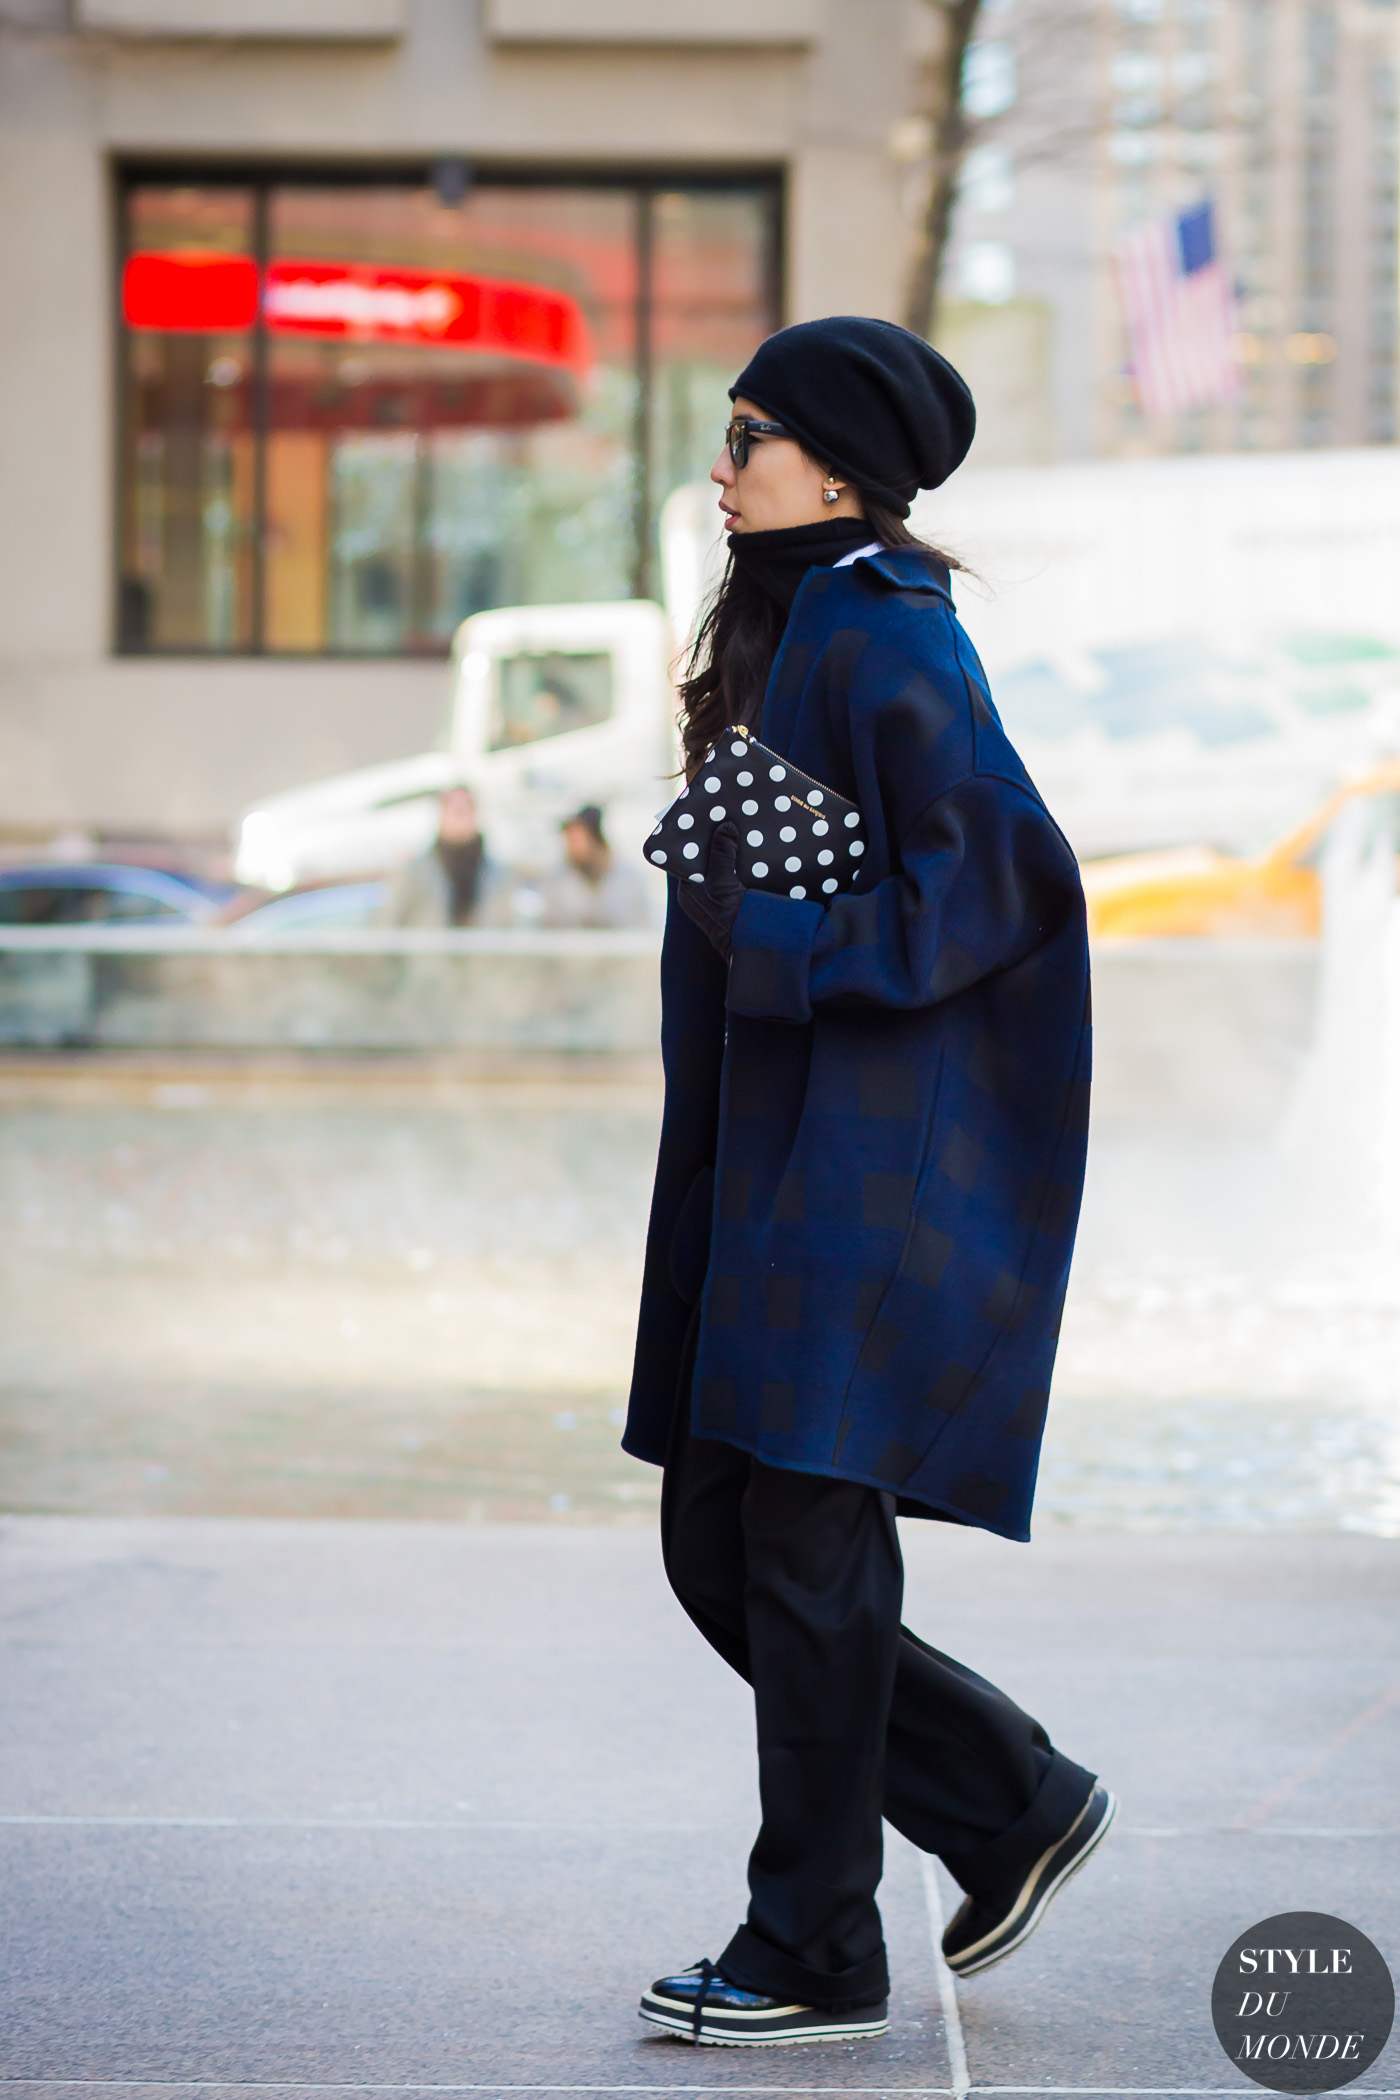 Before The Row Street Style Street Fashion Streetsnaps by STYLEDUMONDE Street Style Fashion Photography